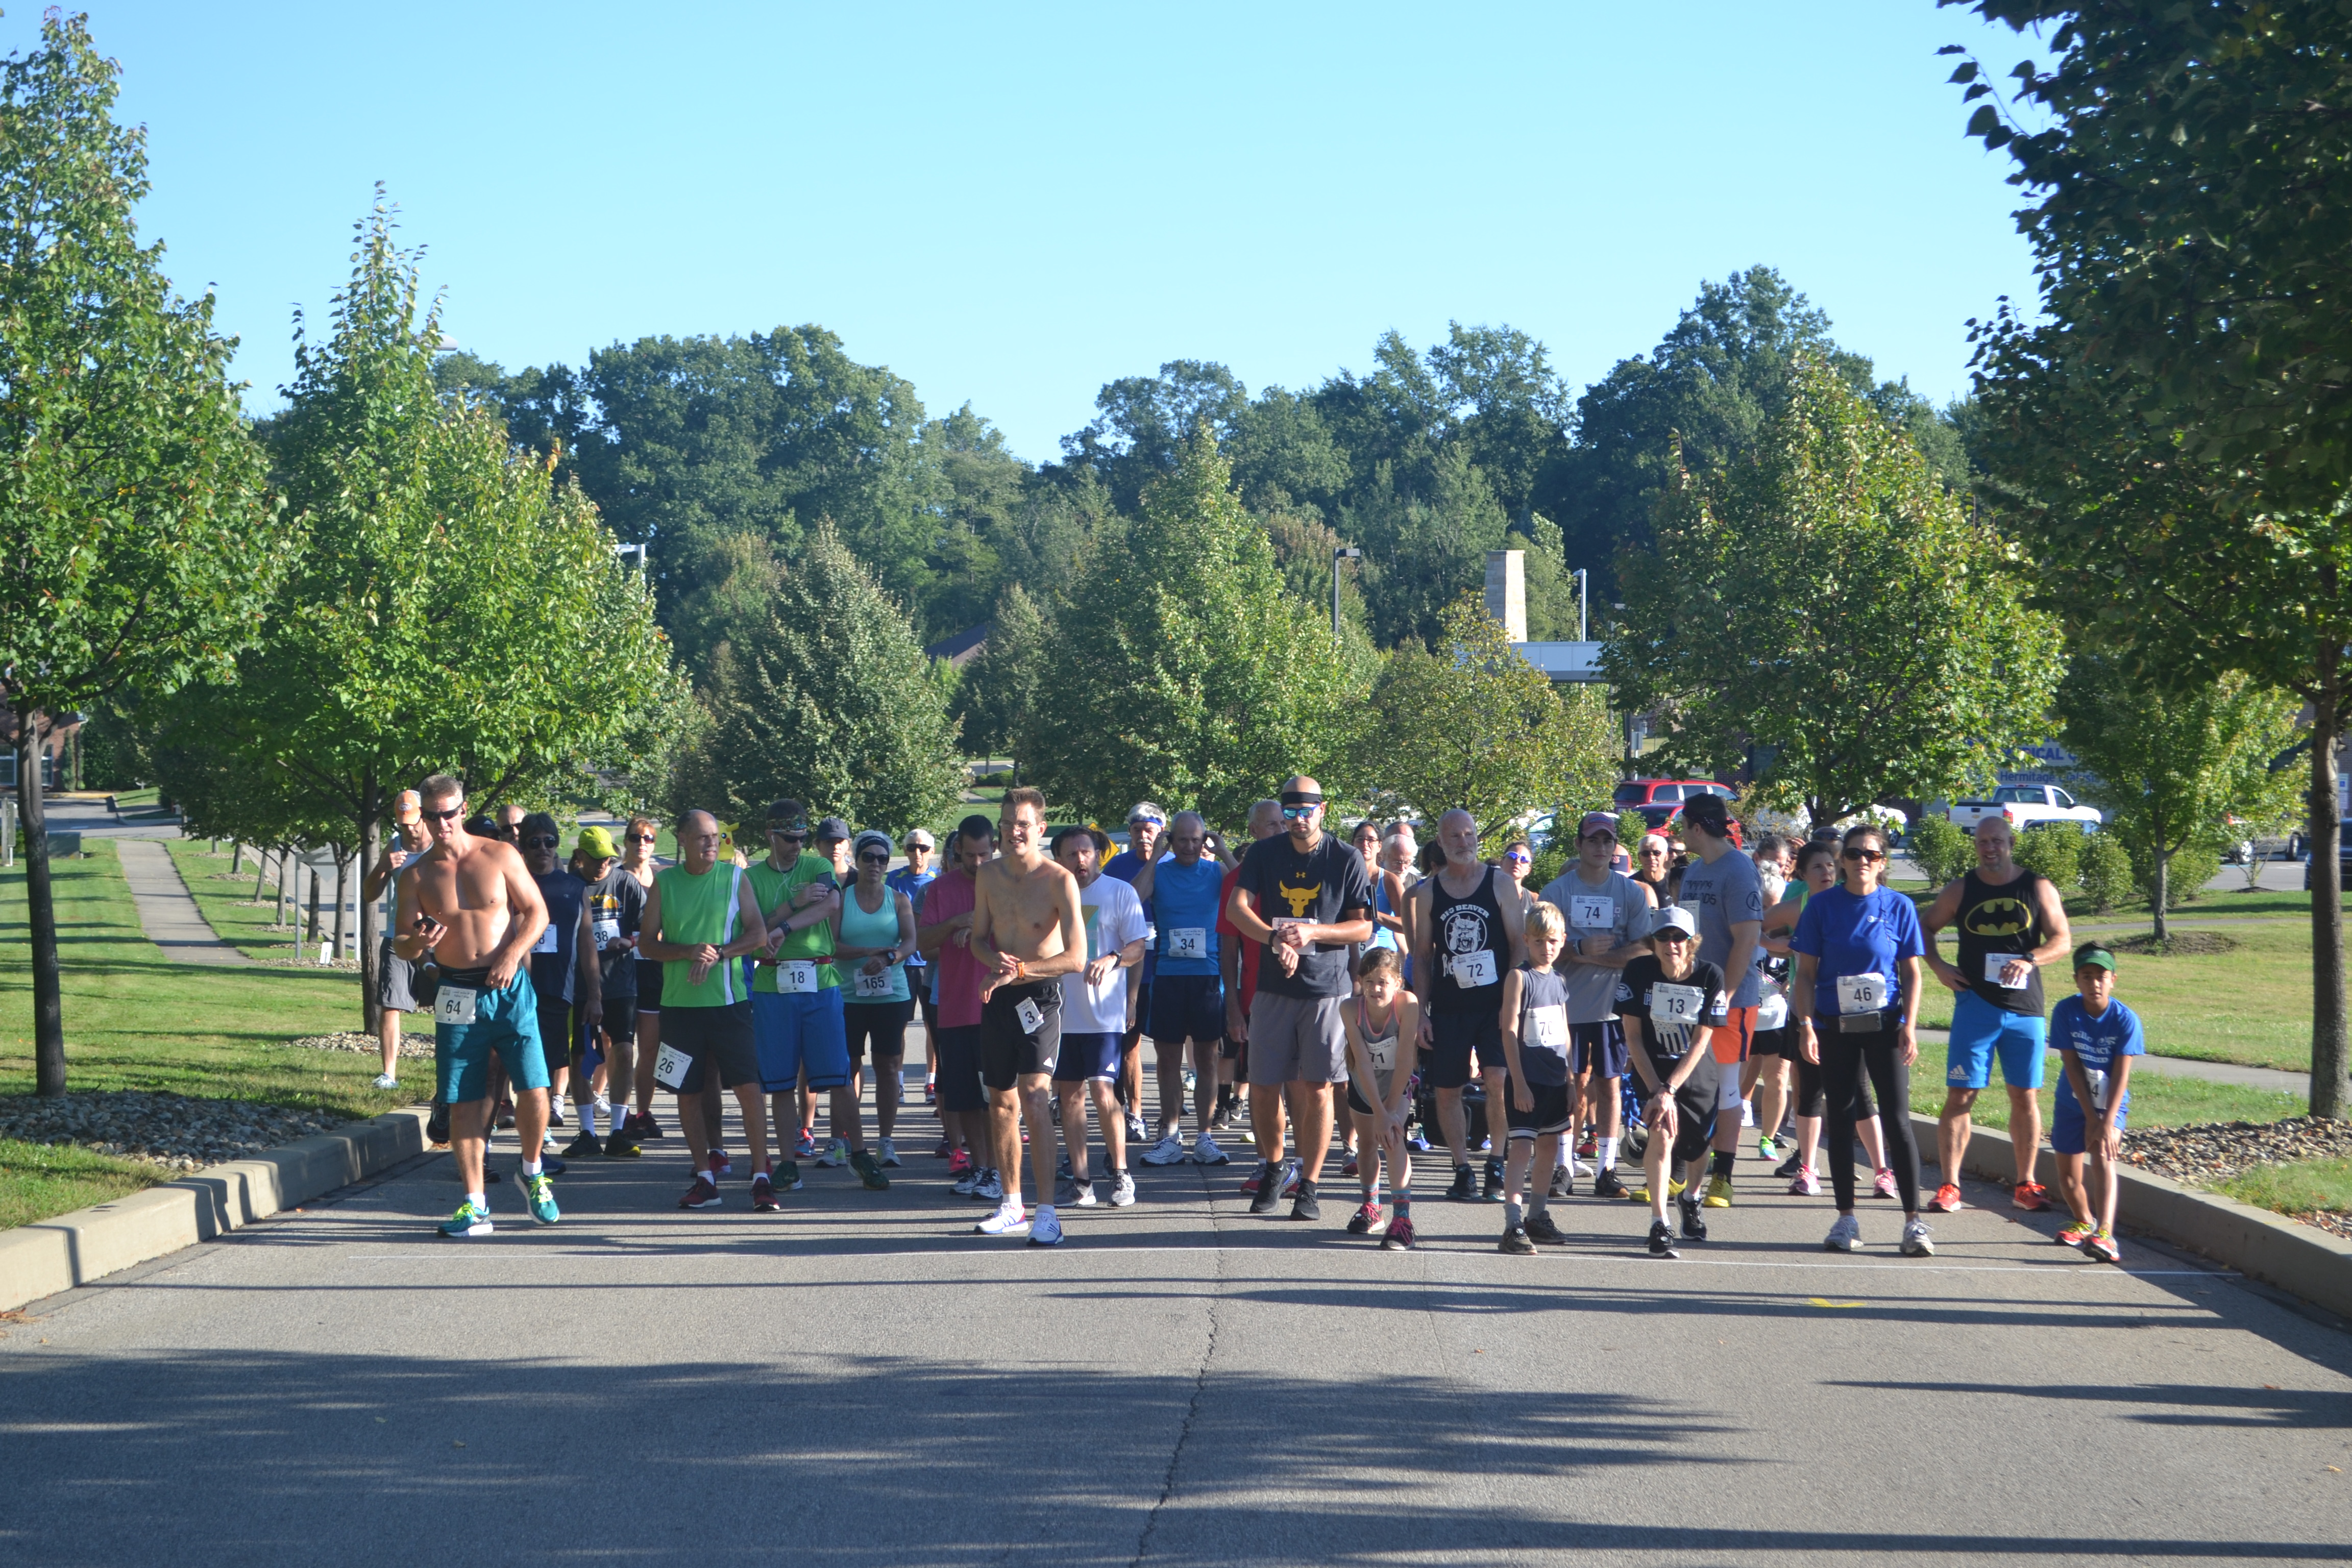 Ninth Annual Race to End Hunger